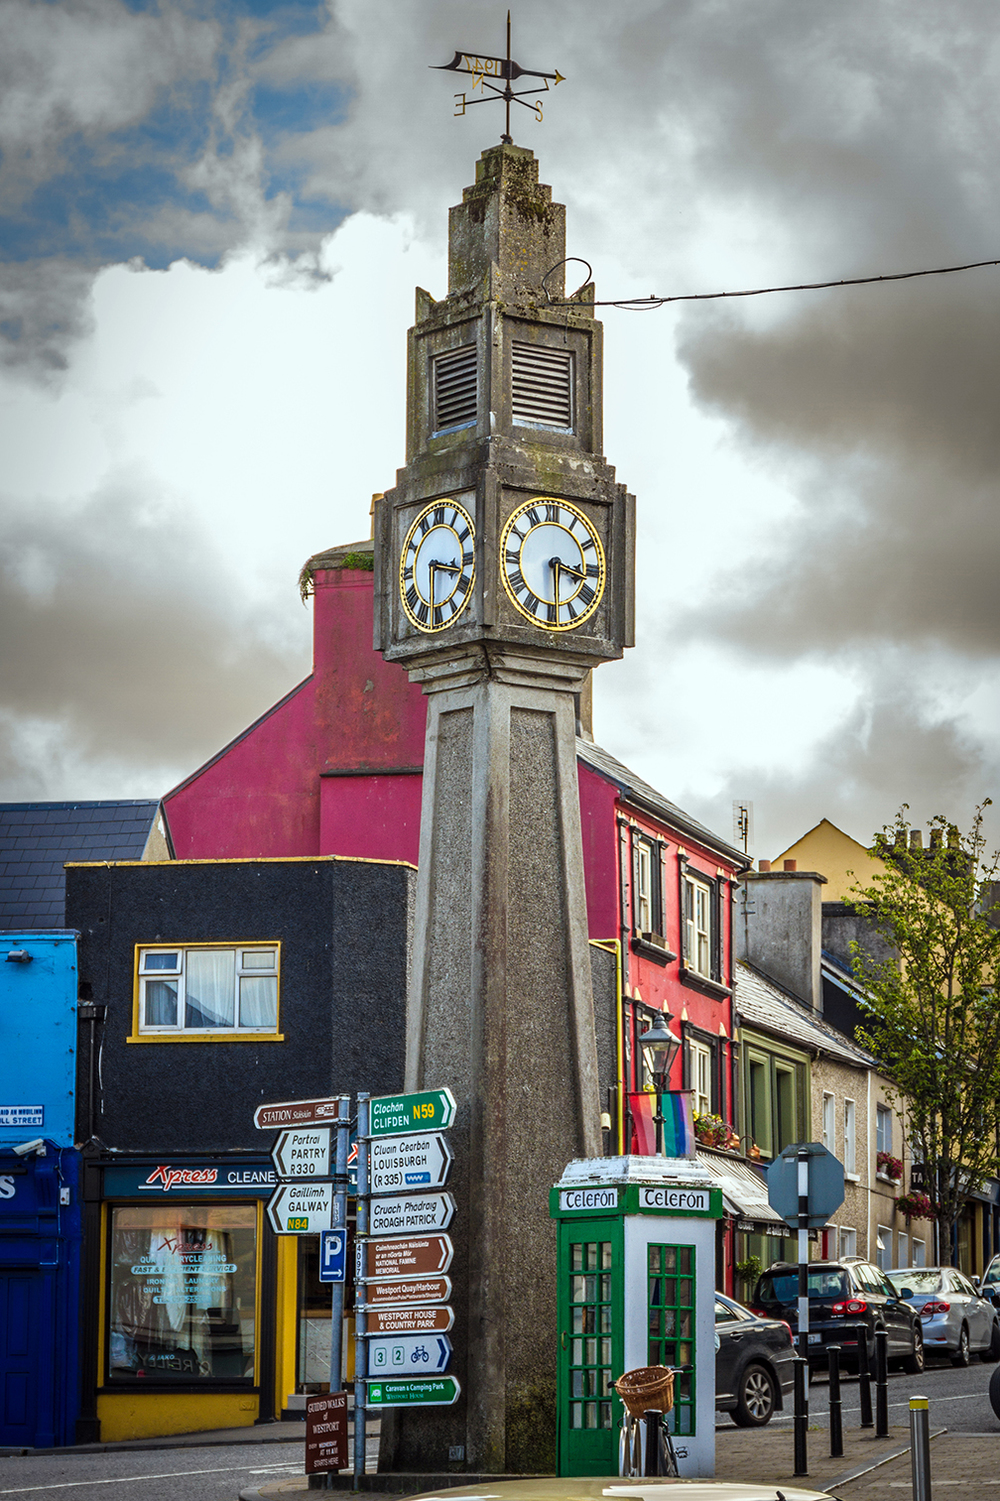 The clock tower in Westport Town